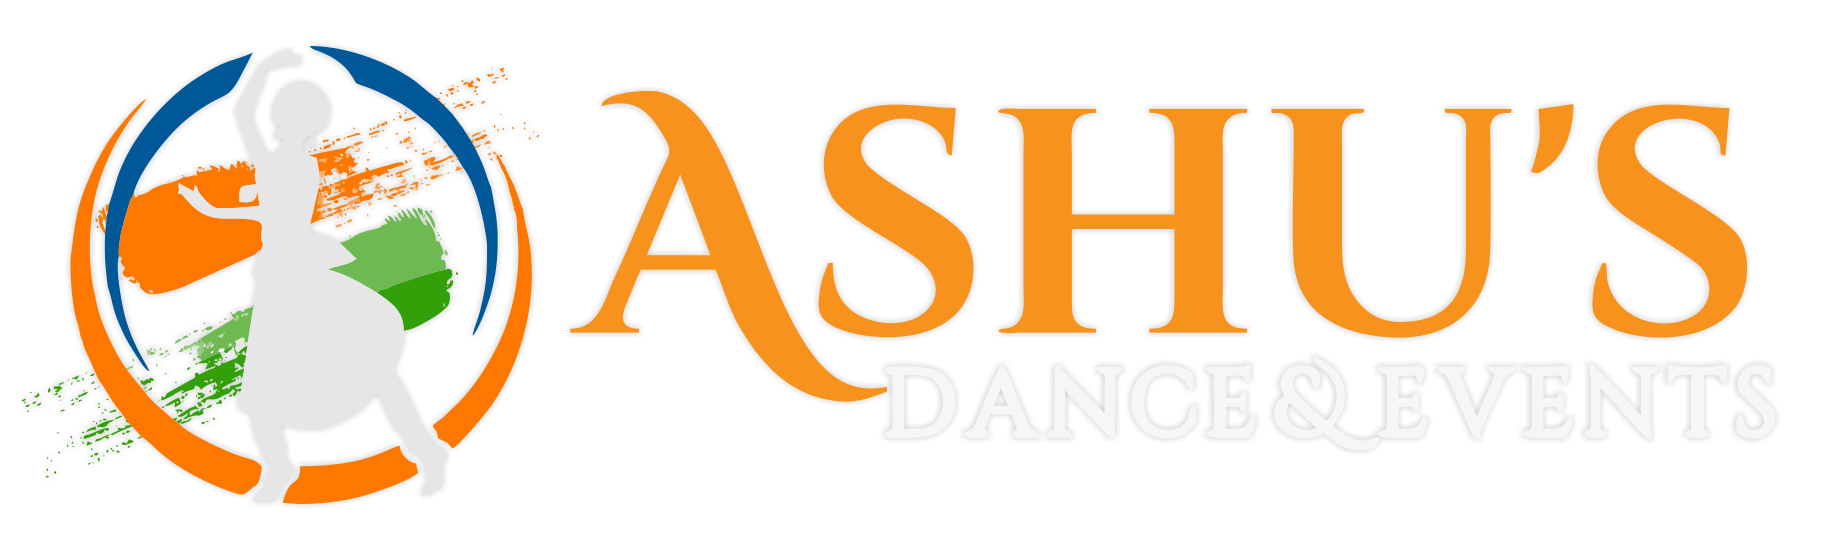 Ashu's Dance & Events